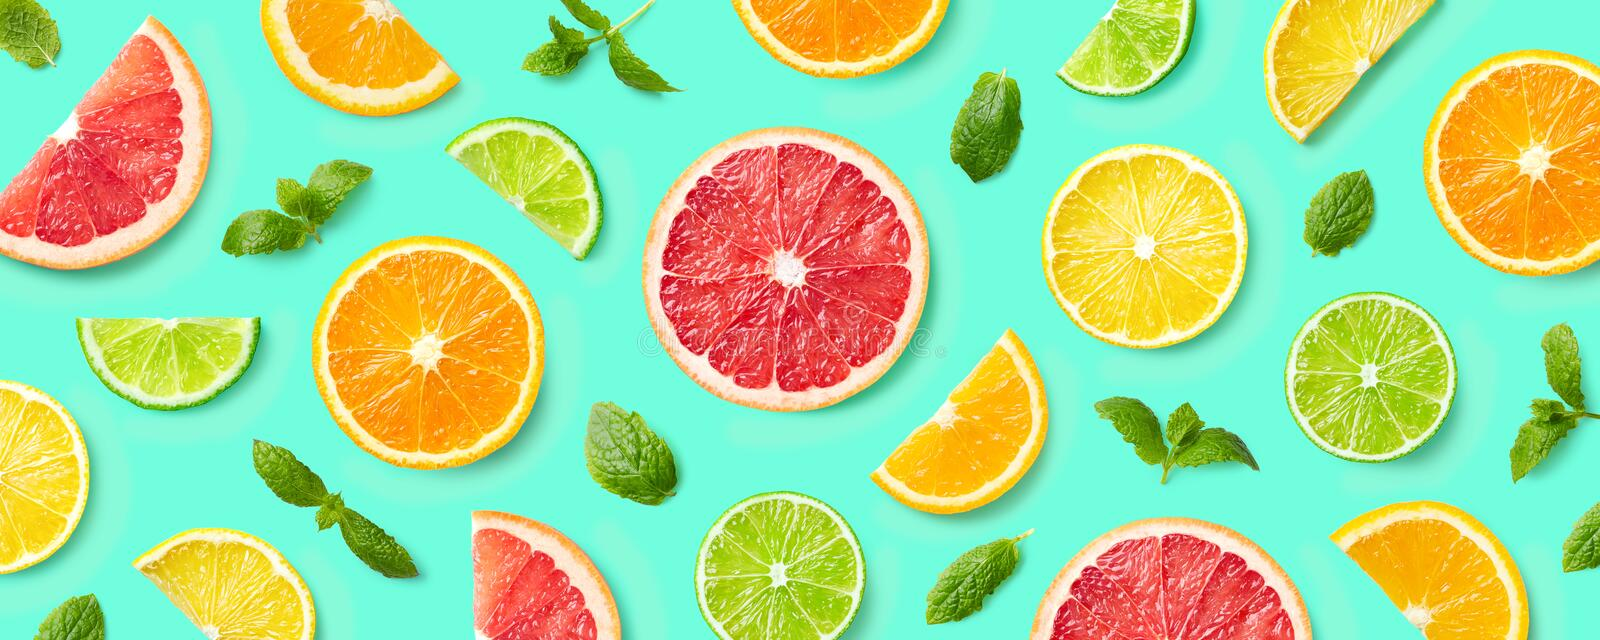 Colorful pattern of citrus fruit slices and mint leaves royalty free stock photo